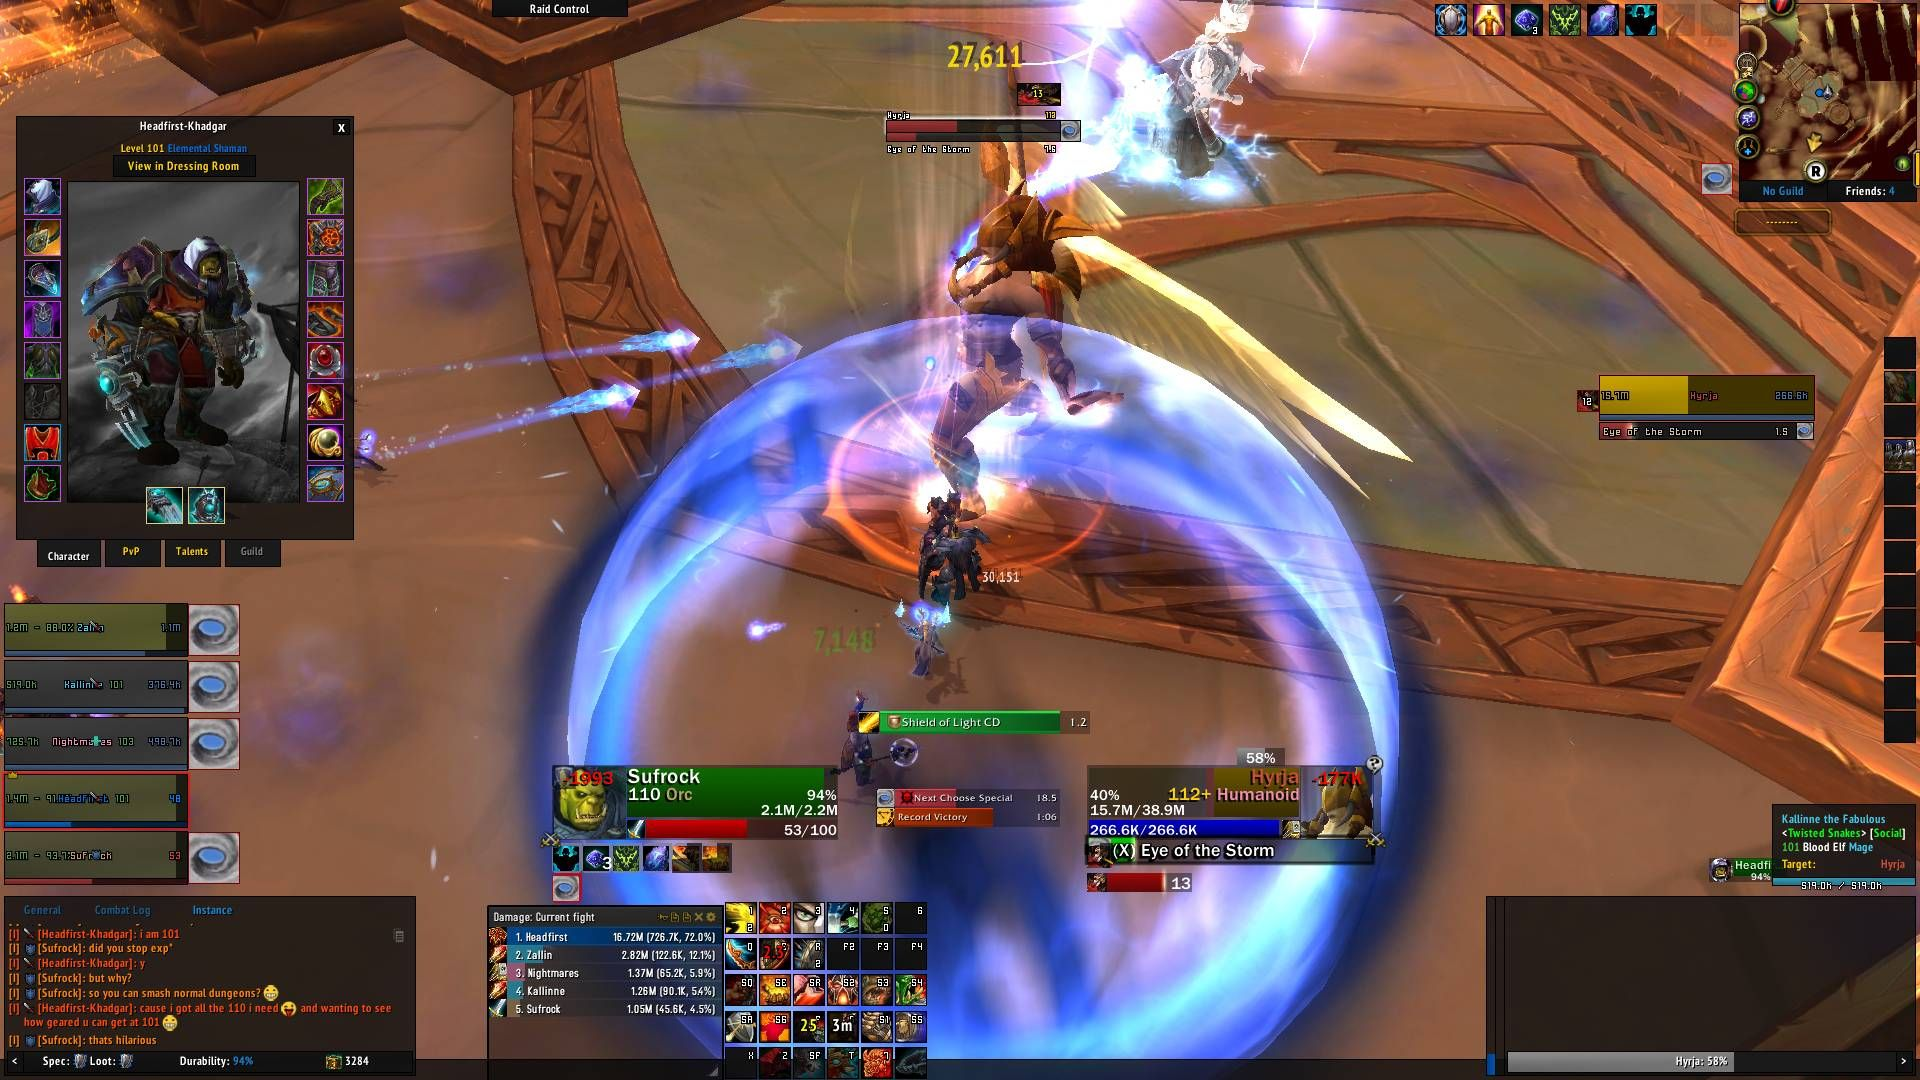 This Ele Shaman in my Normal Dungeon group wanted to see how high his gear could get at level 101. He had 824 ilvl. #worldofwarcraft #blizzard #Hearthstone #wow #Warcraft #BlizzardCS #gaming